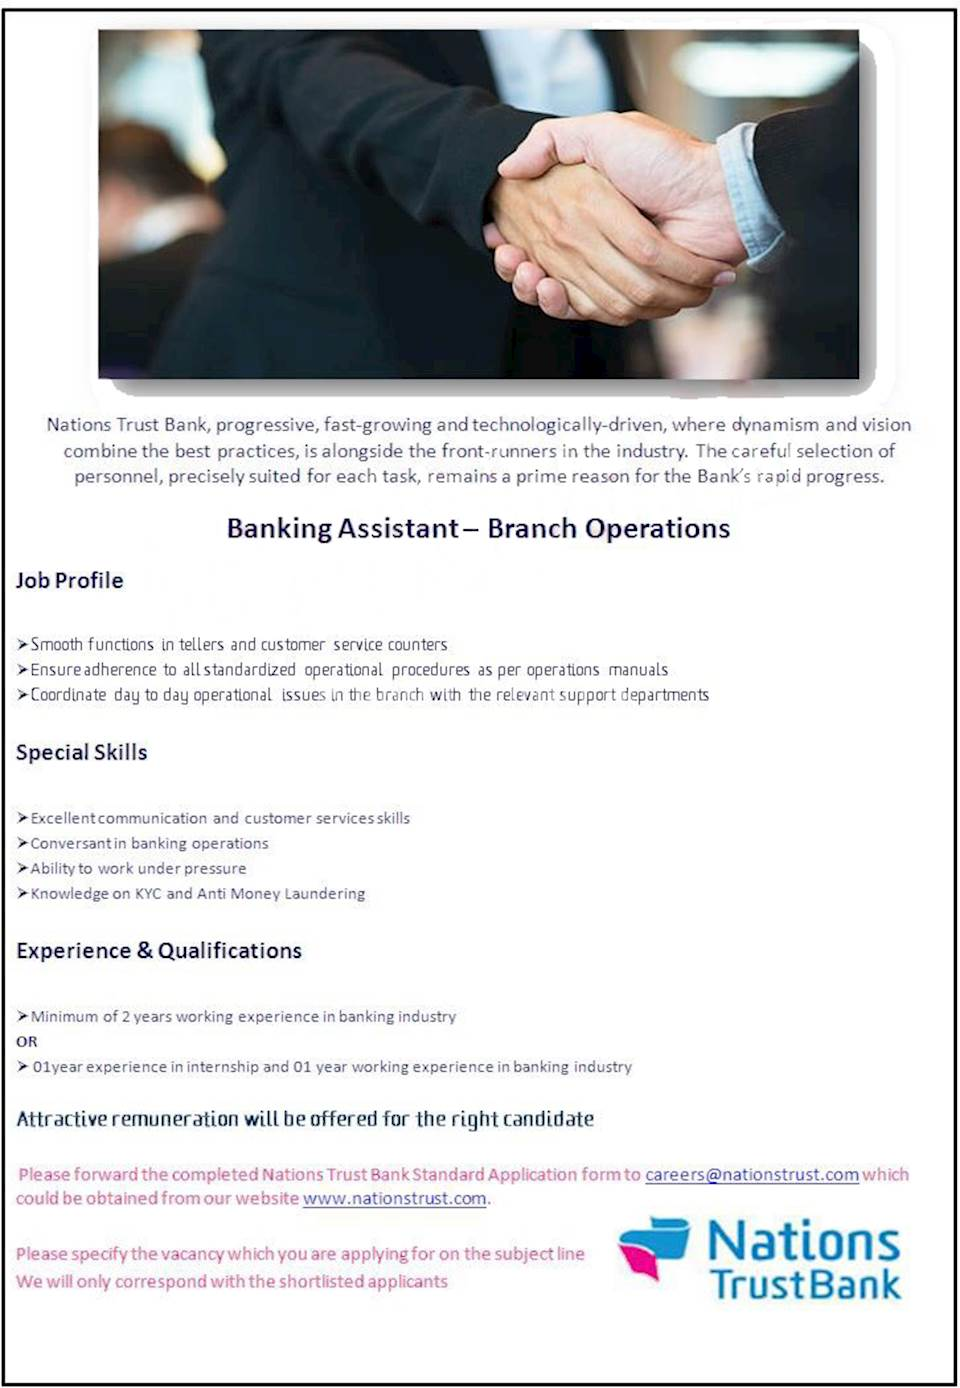 Banking Assistant - Branch Operations